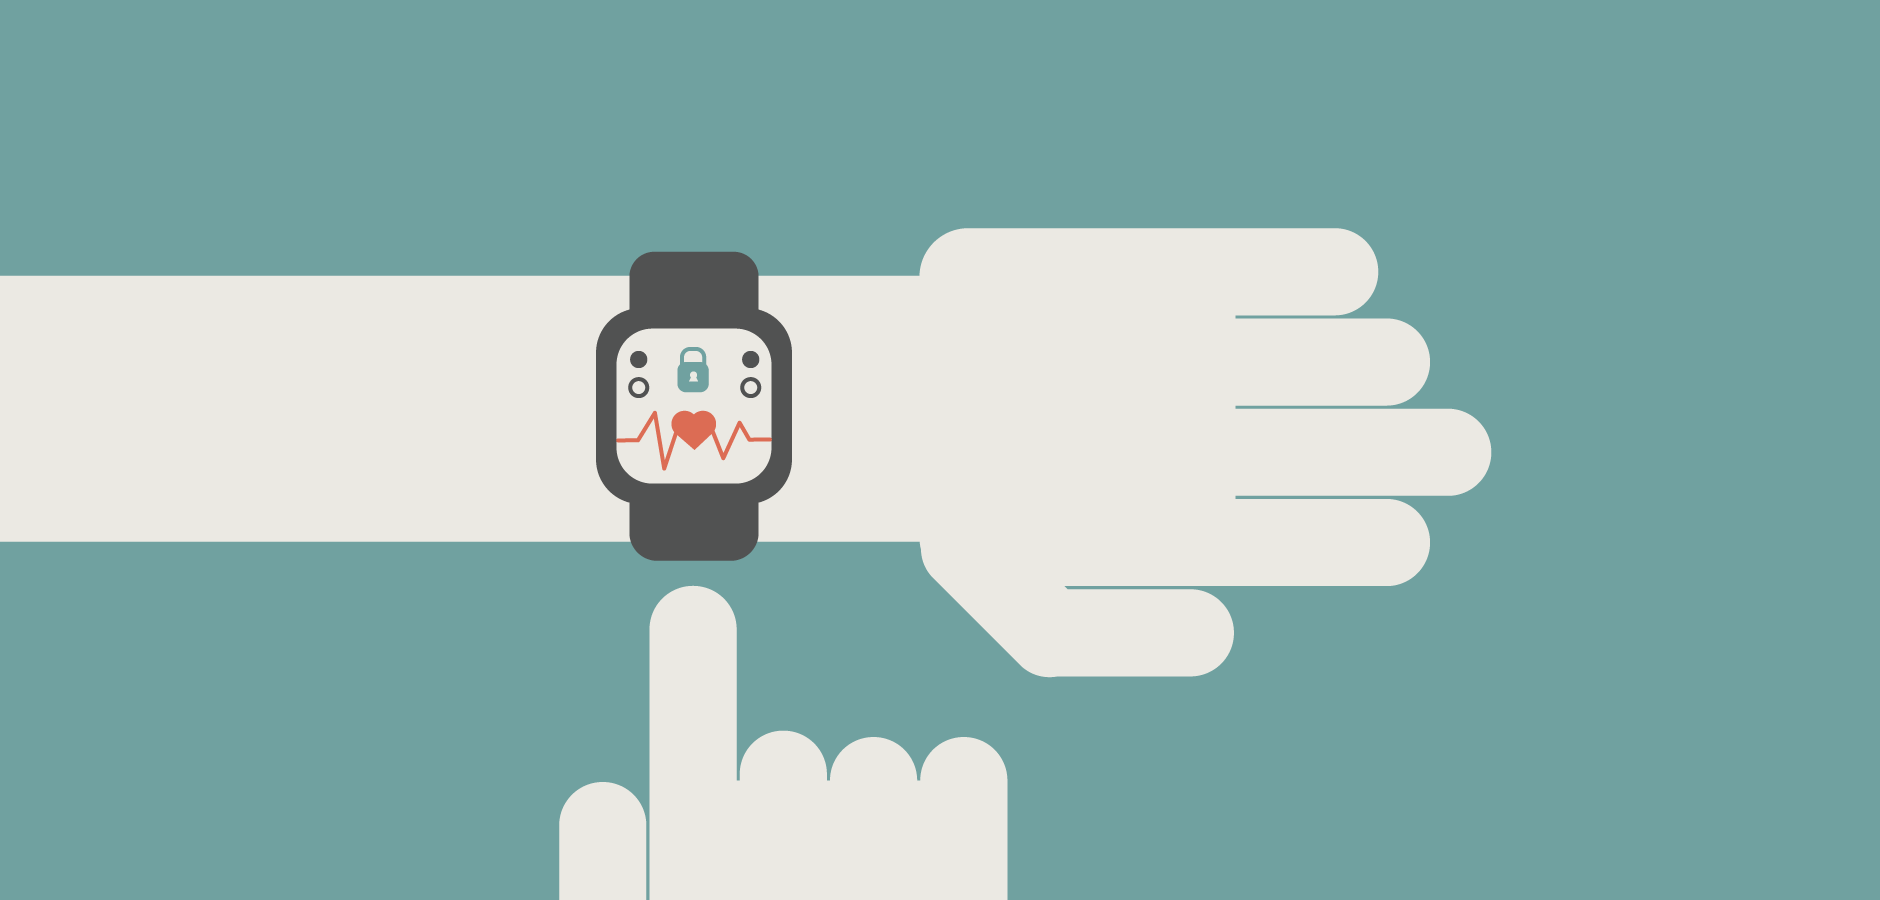 ae5bdb879 Why Wearables are the Future - Andreas Stegmann - Medium